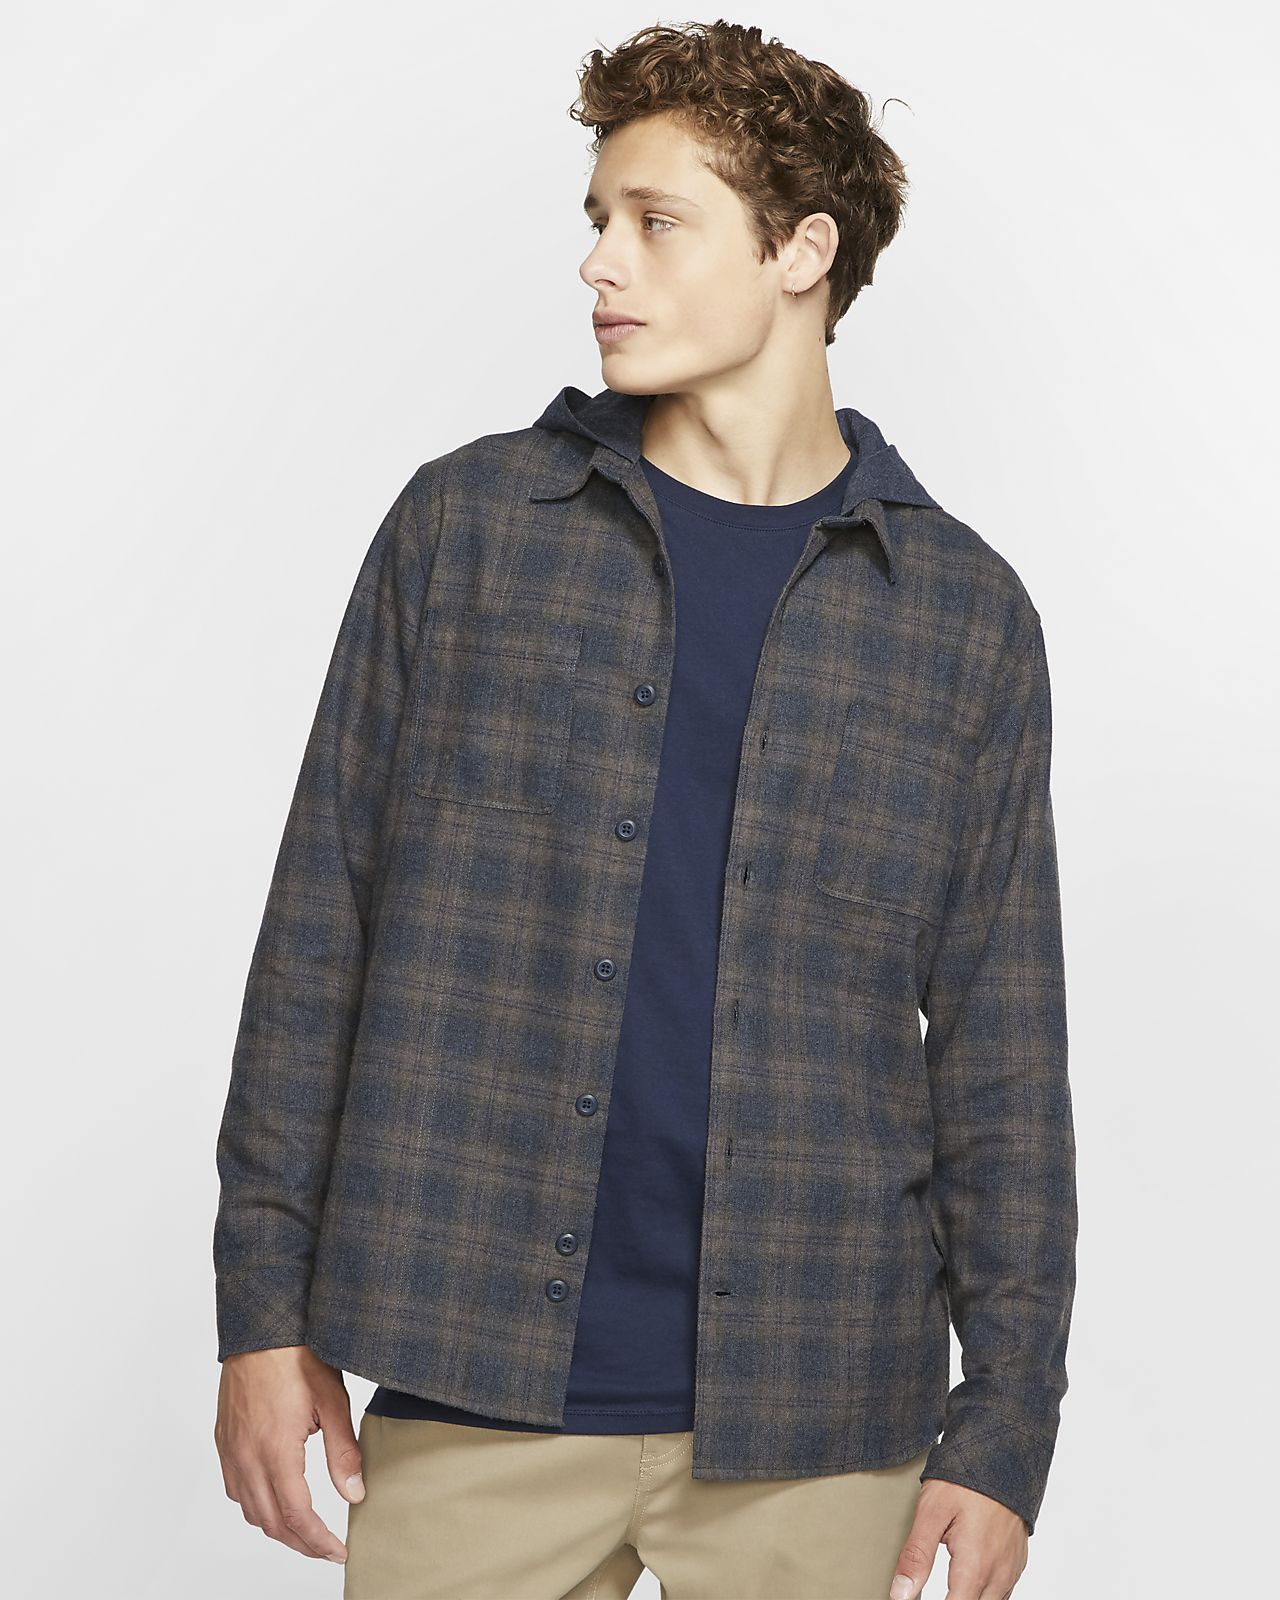 Hurley Crowley Washed Men's Long-Sleeve Hooded Shirt